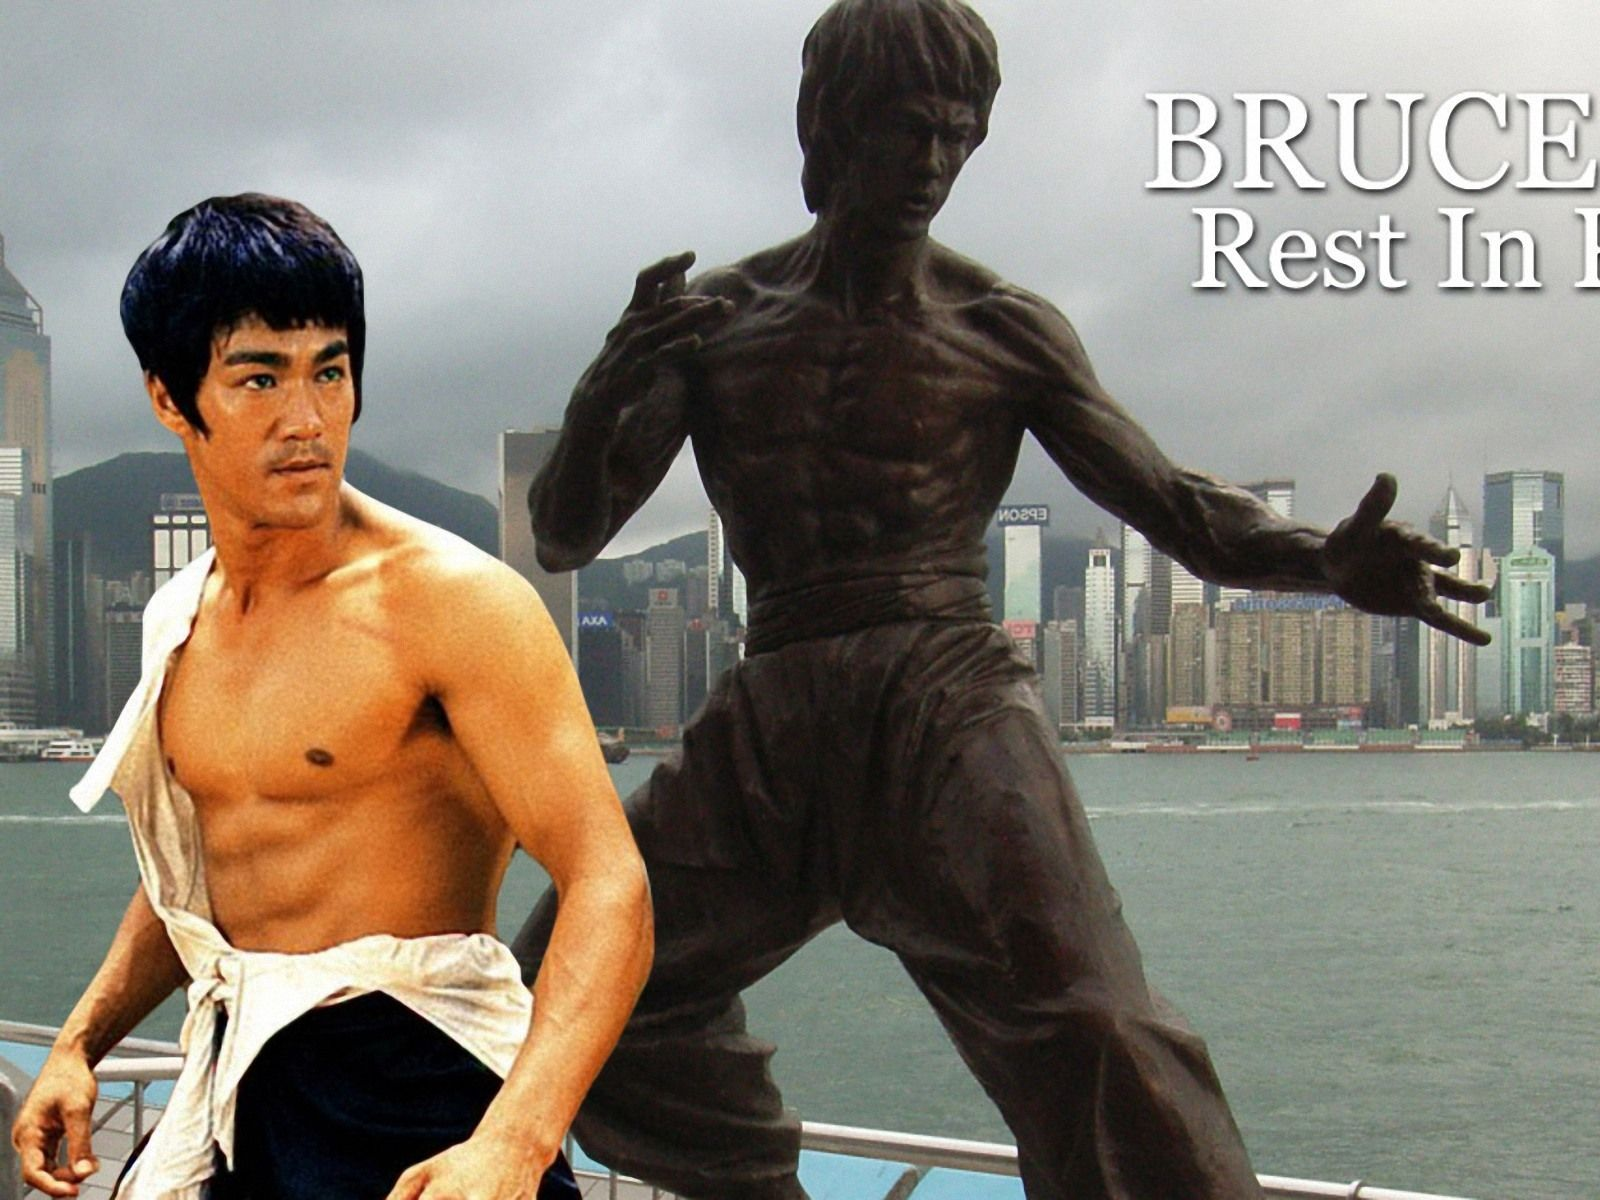 Did bruce lee cheat on his wife